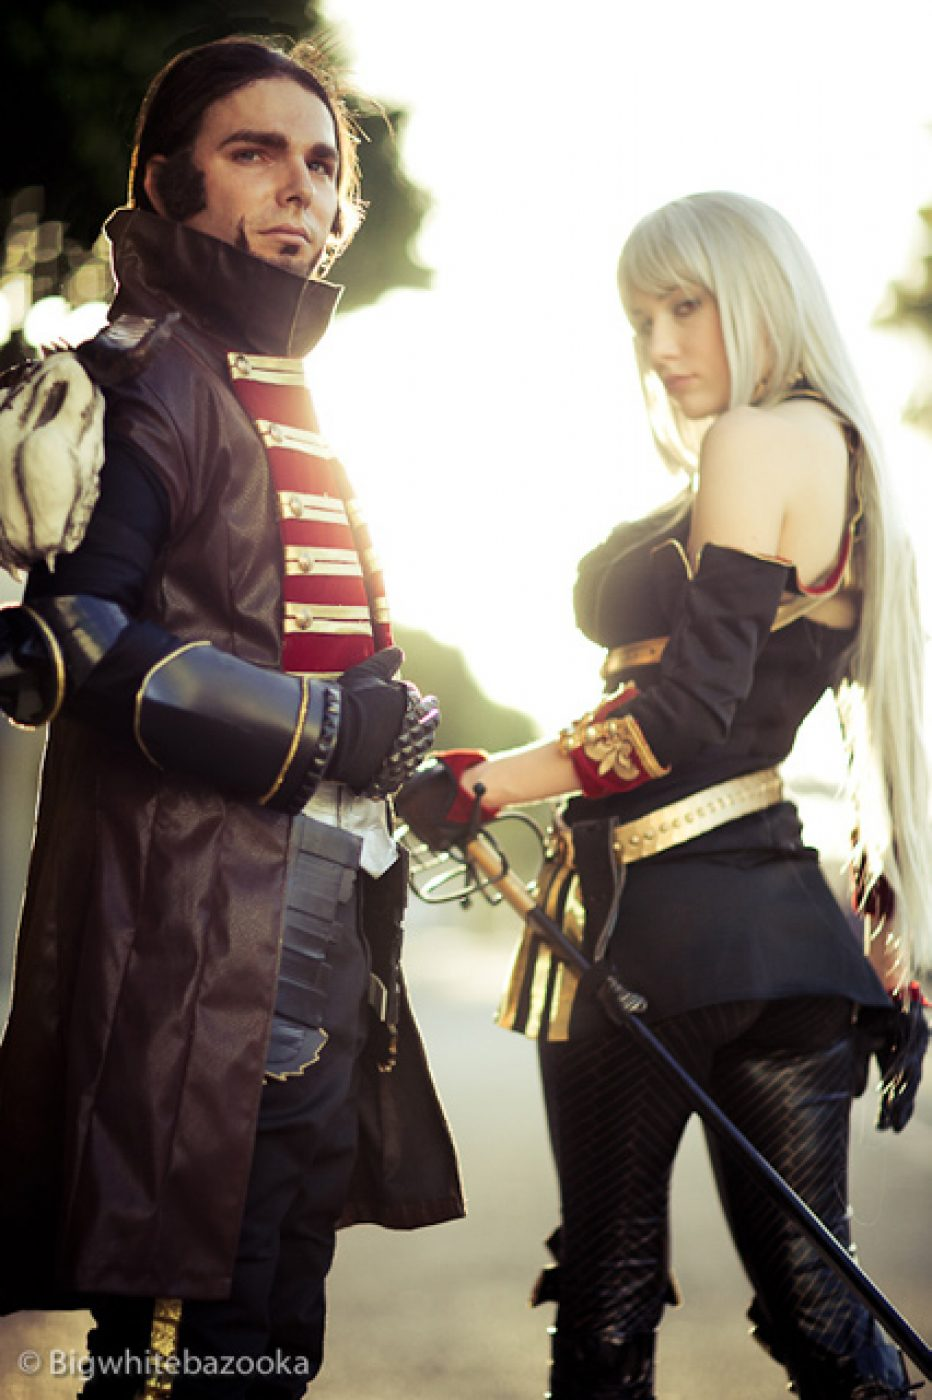 Valkyria-Chronicles-Selvaria-Bles-Cosplay-Gamers-Heroes-3.jpg